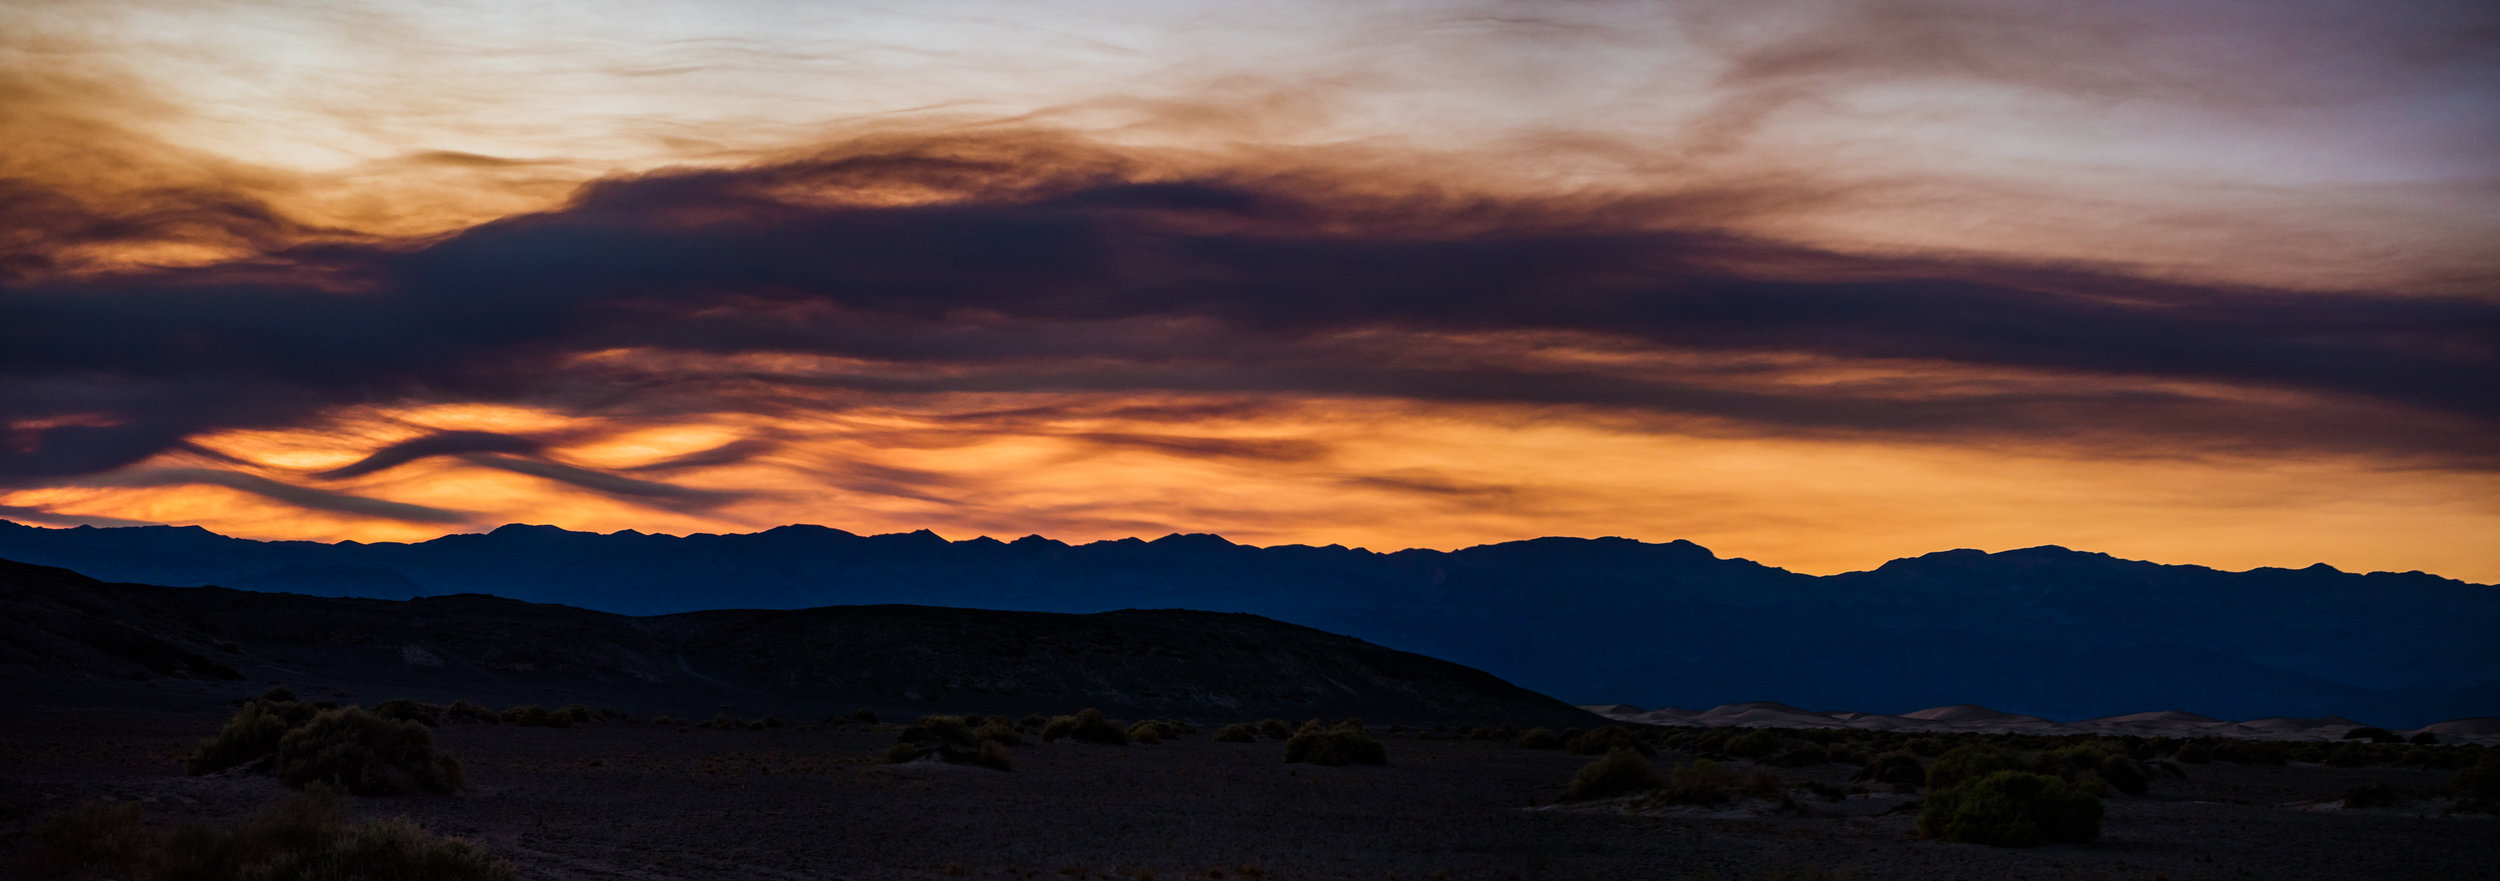 Sunset coming through Death Valley the night before our recent adventures